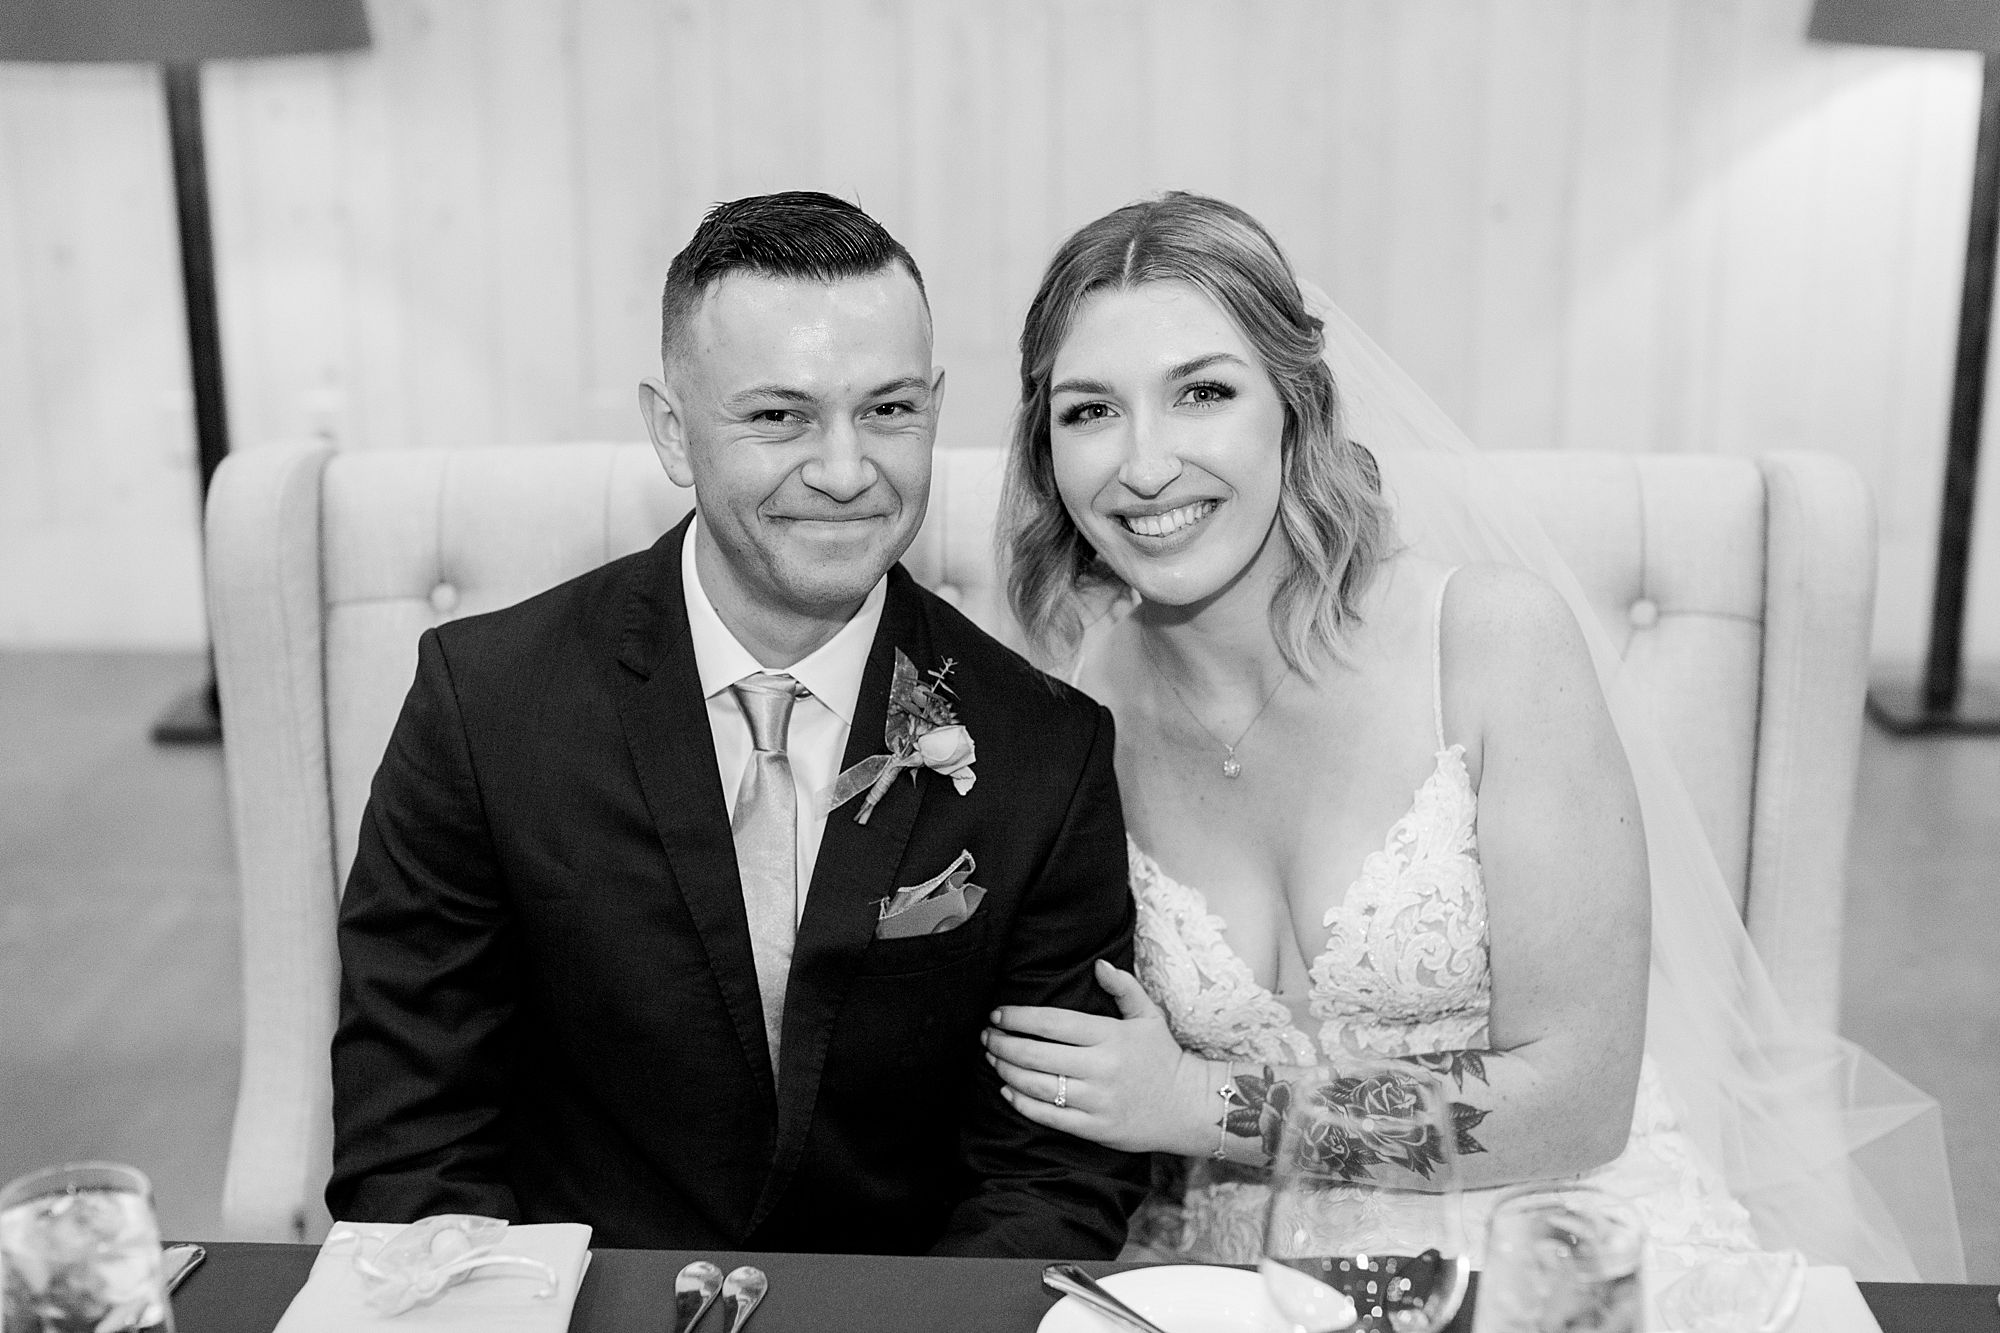 Inn at Park Winters Wedding - Lindsay and Shane - Ashley Baumgartner - Park Winters Wedding Photographer - Sacramento Wedding Photographer_0077.jpg